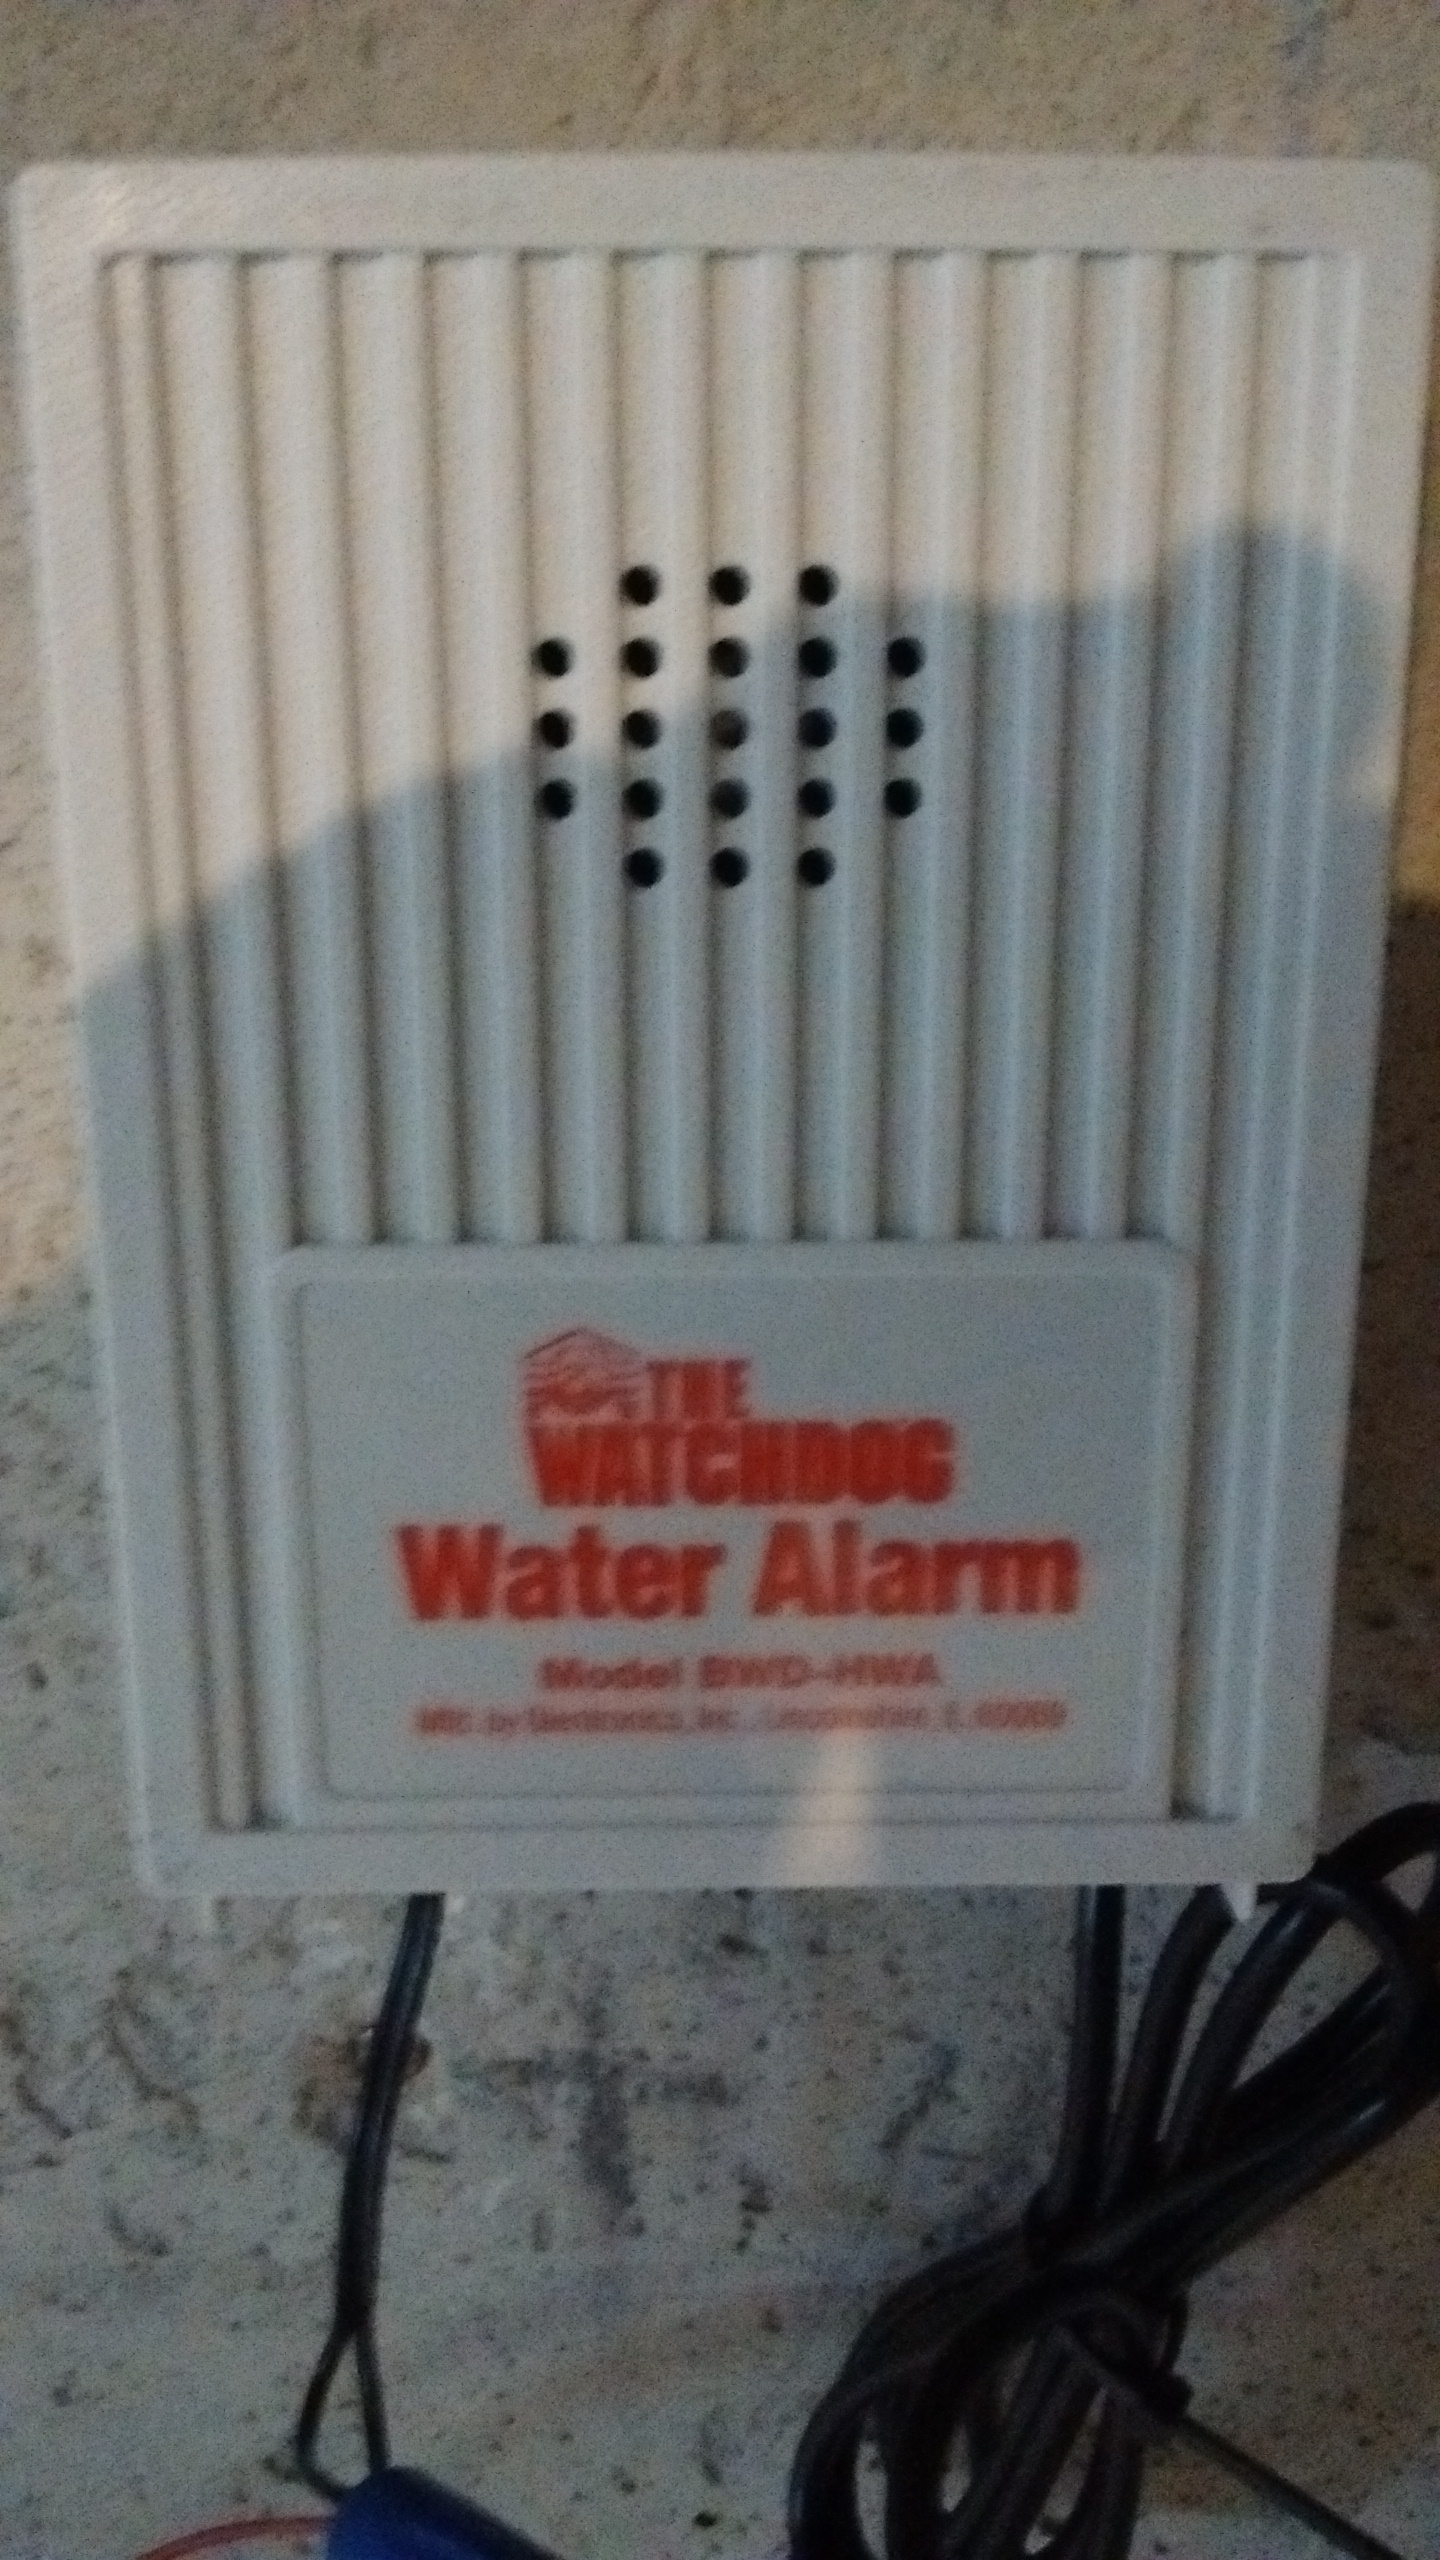 Water Alarm + Blynk + esp8266 + Node-RED + MQTT - Projects made with